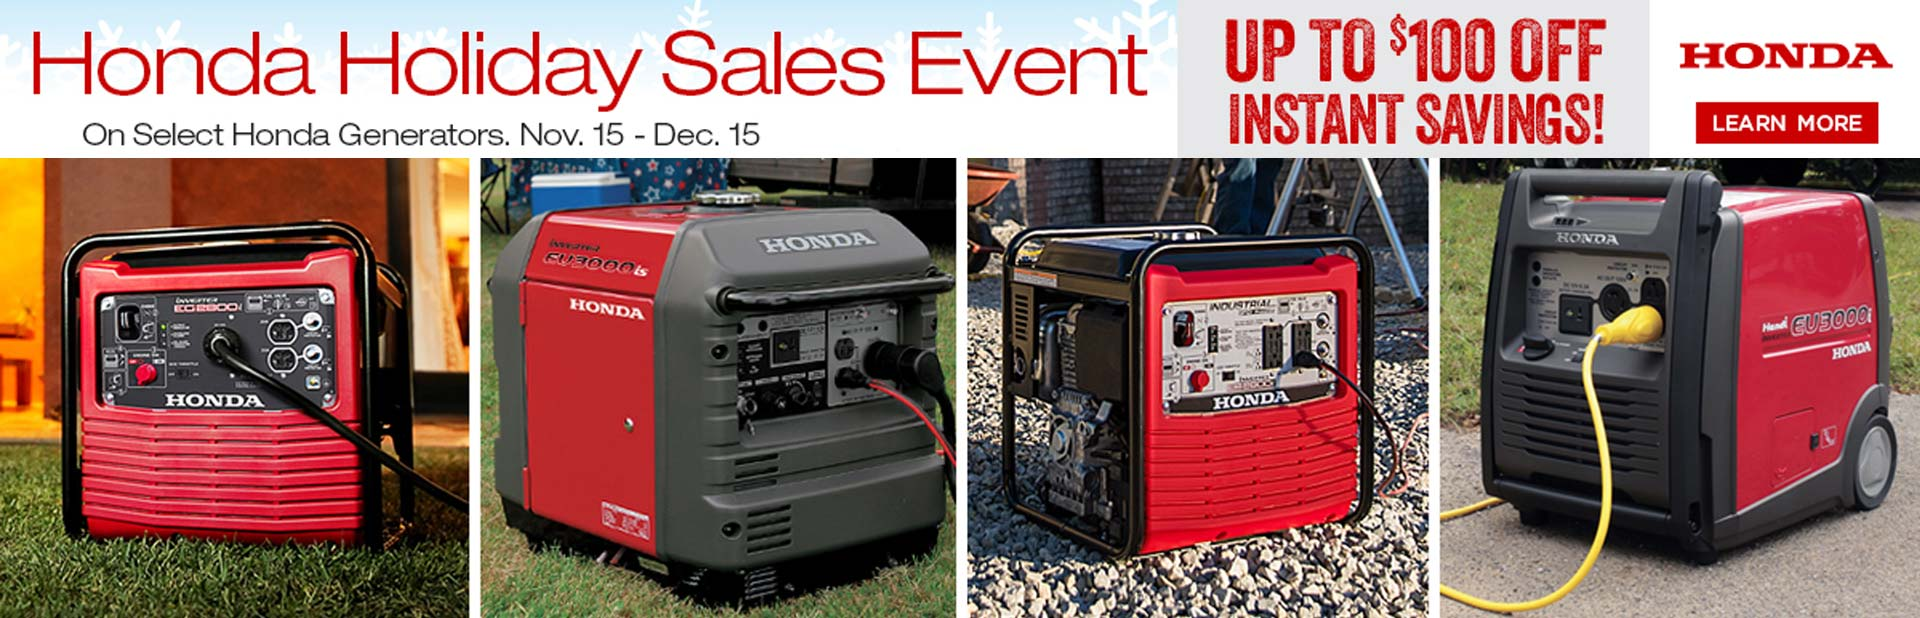 Honda Holiday Savings Event Up To $100 Off Instant Savings!